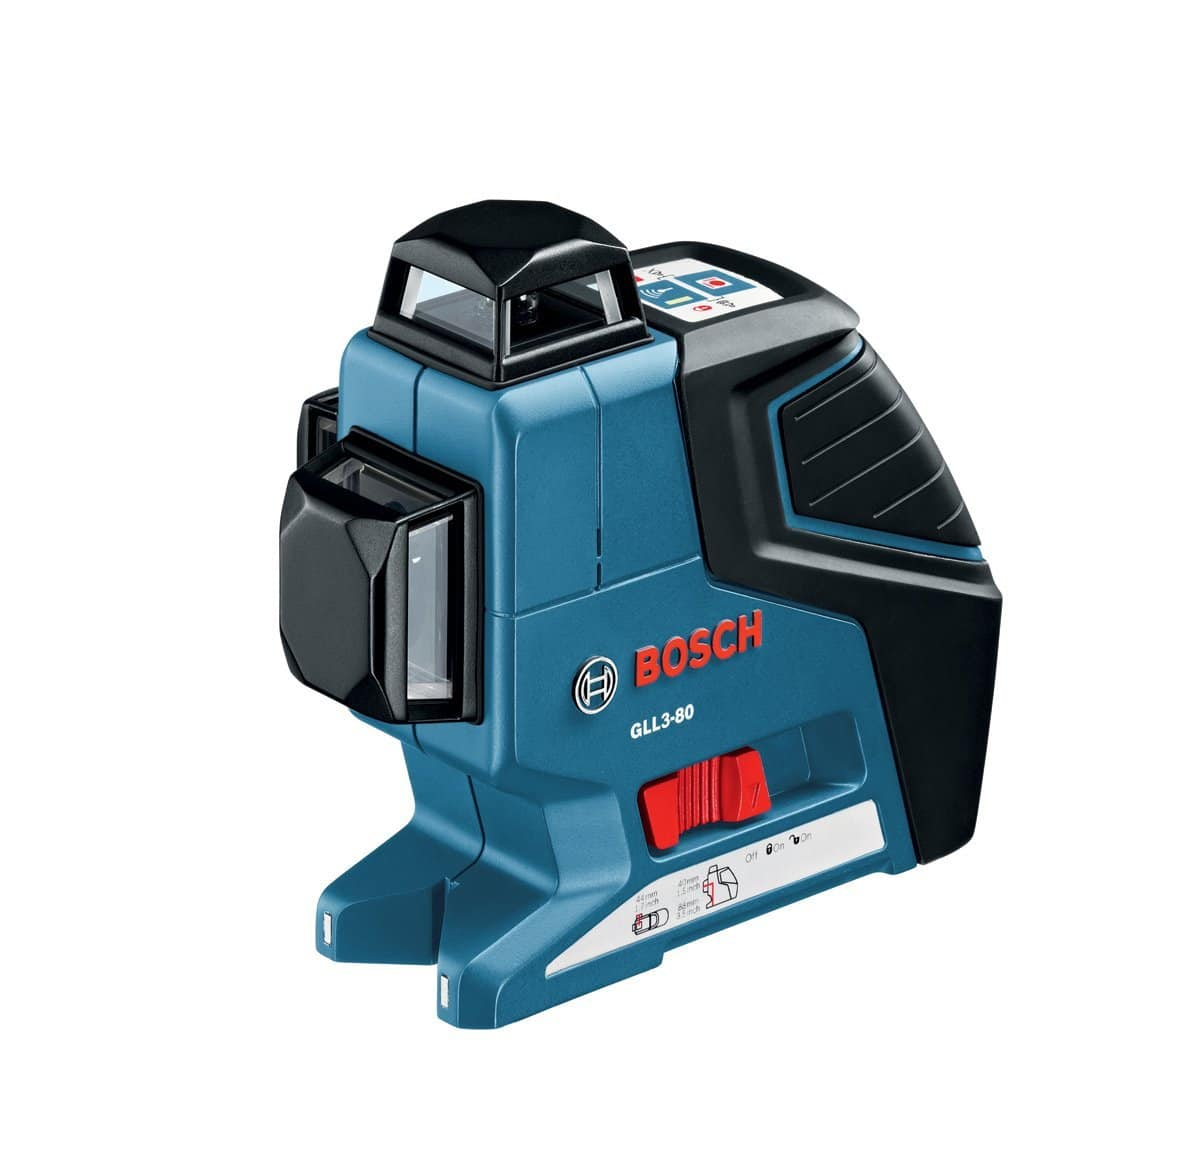 Bosch GLL3-80 Laser Level Review